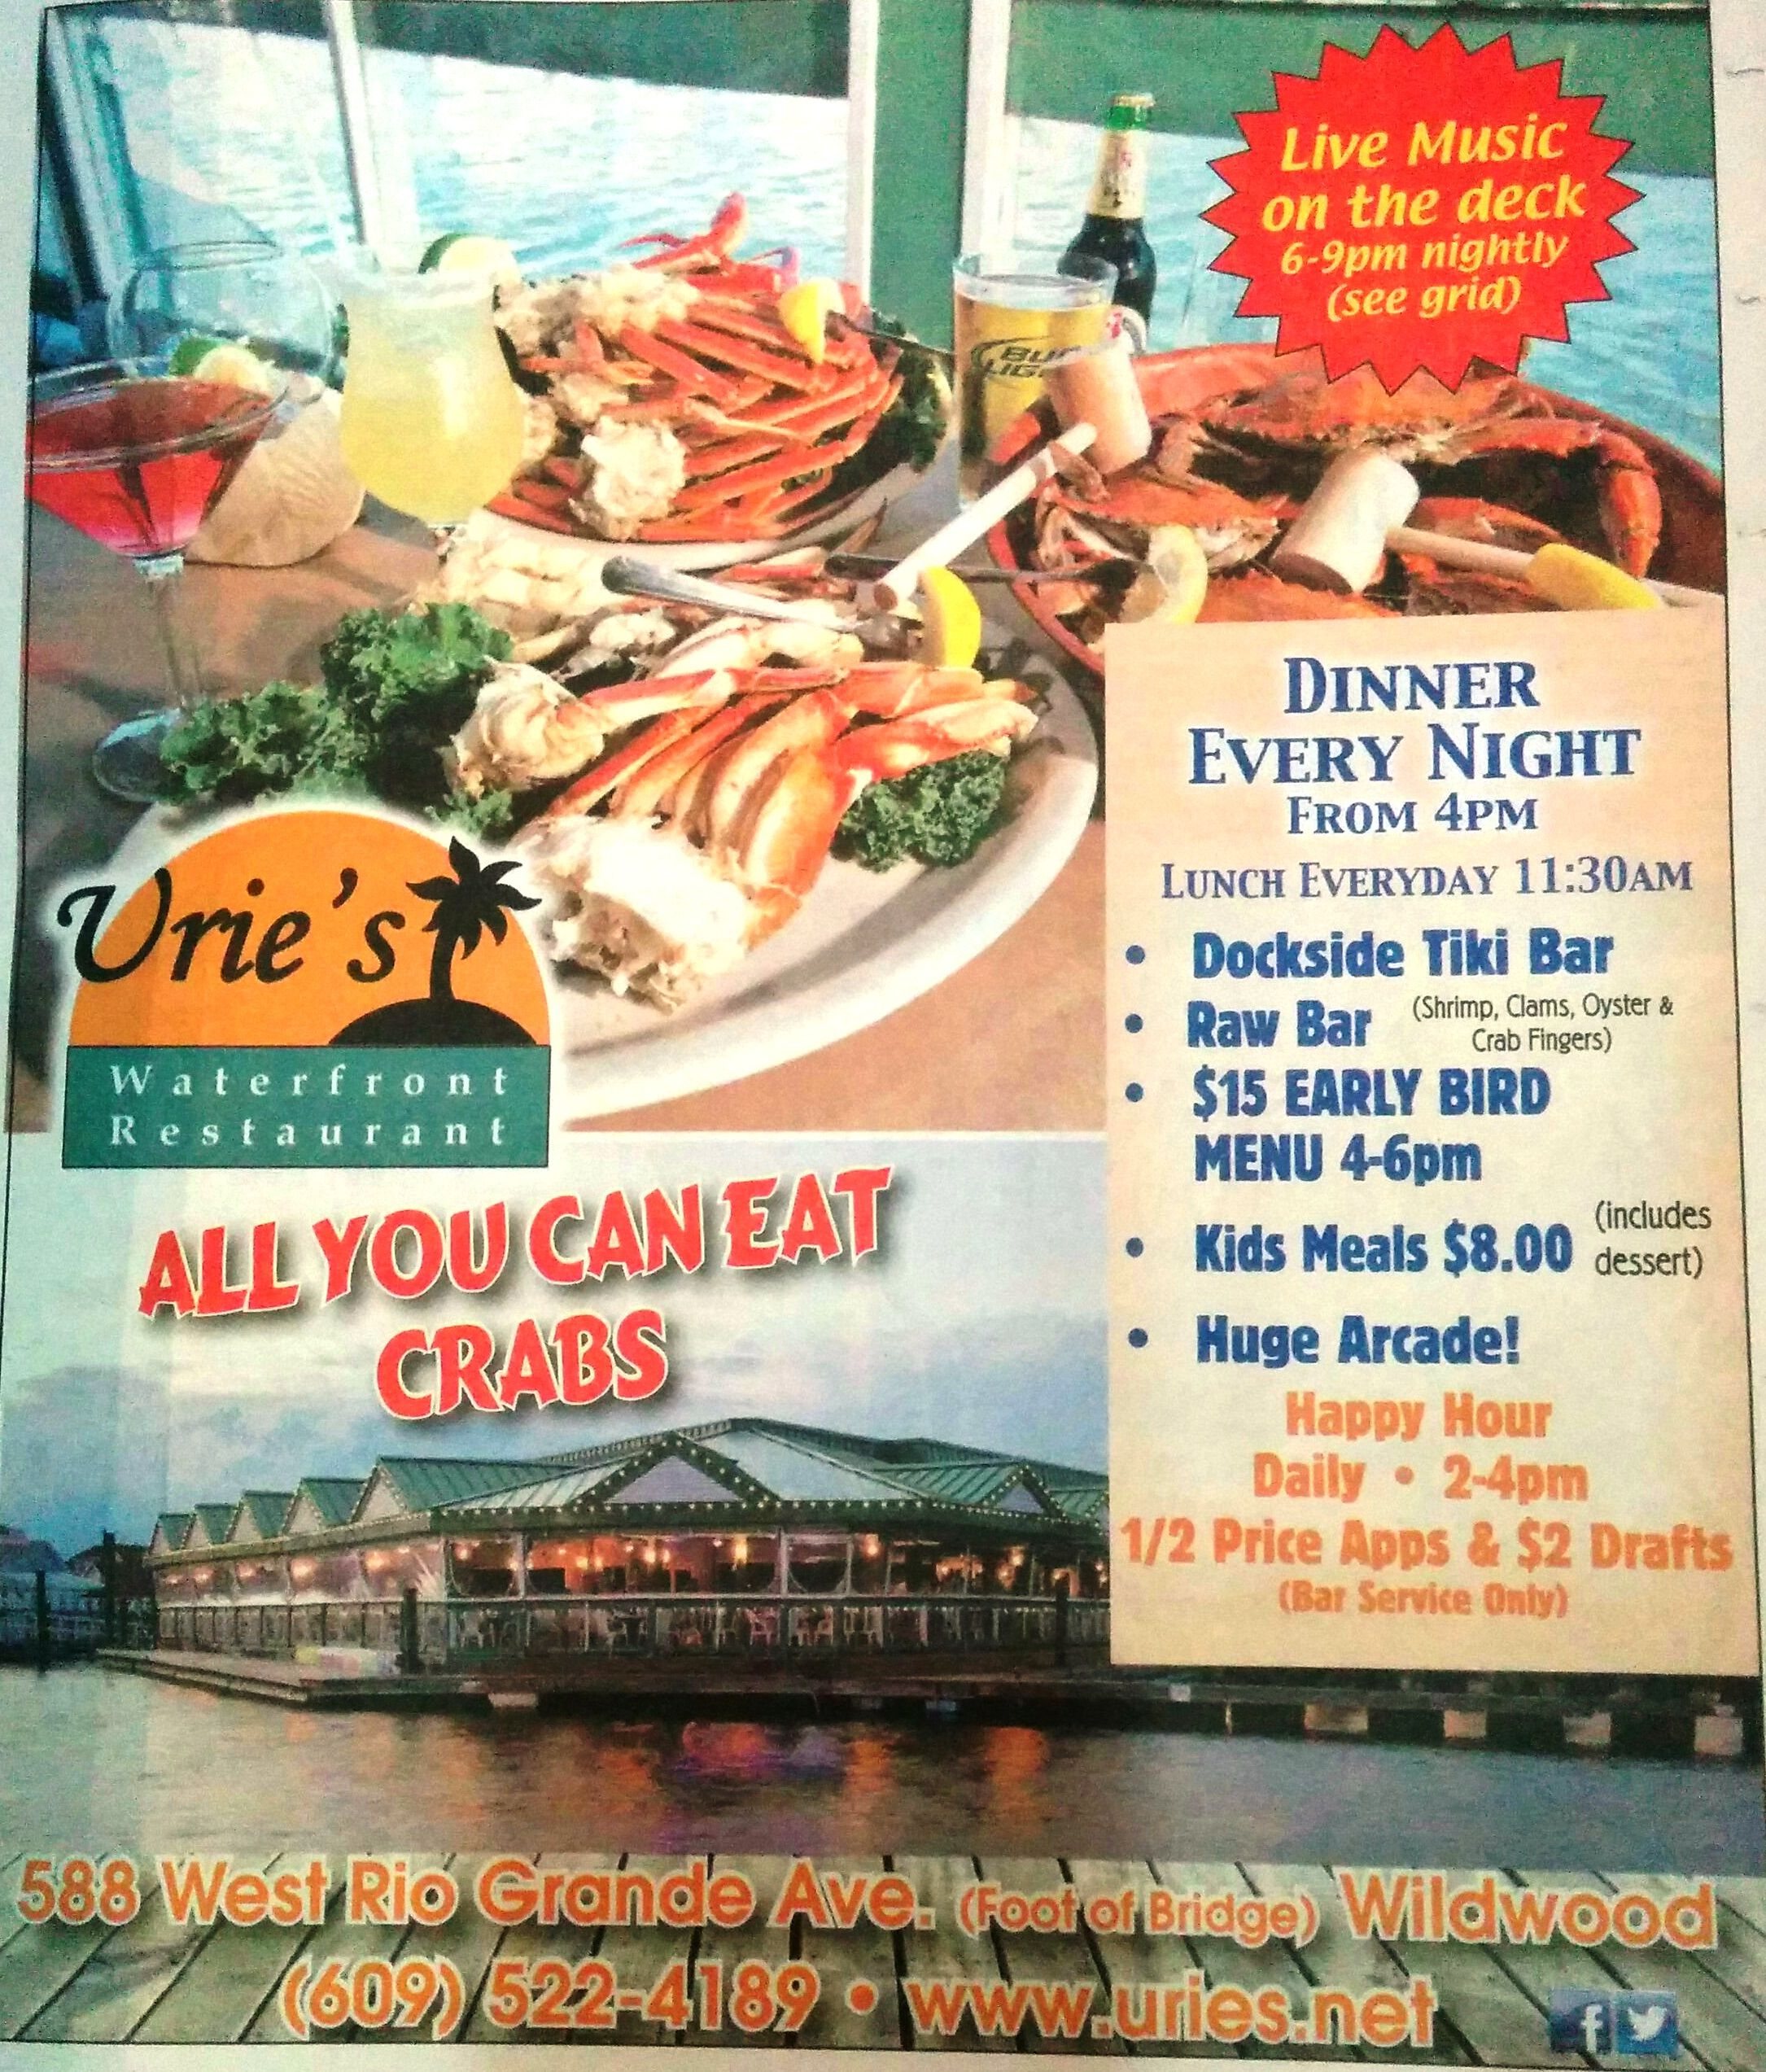 Urie S Restaurant Waterfront All You Can Eat Crabs Newspaper Herald Kids Meals Menu Restaurant Raw Bars